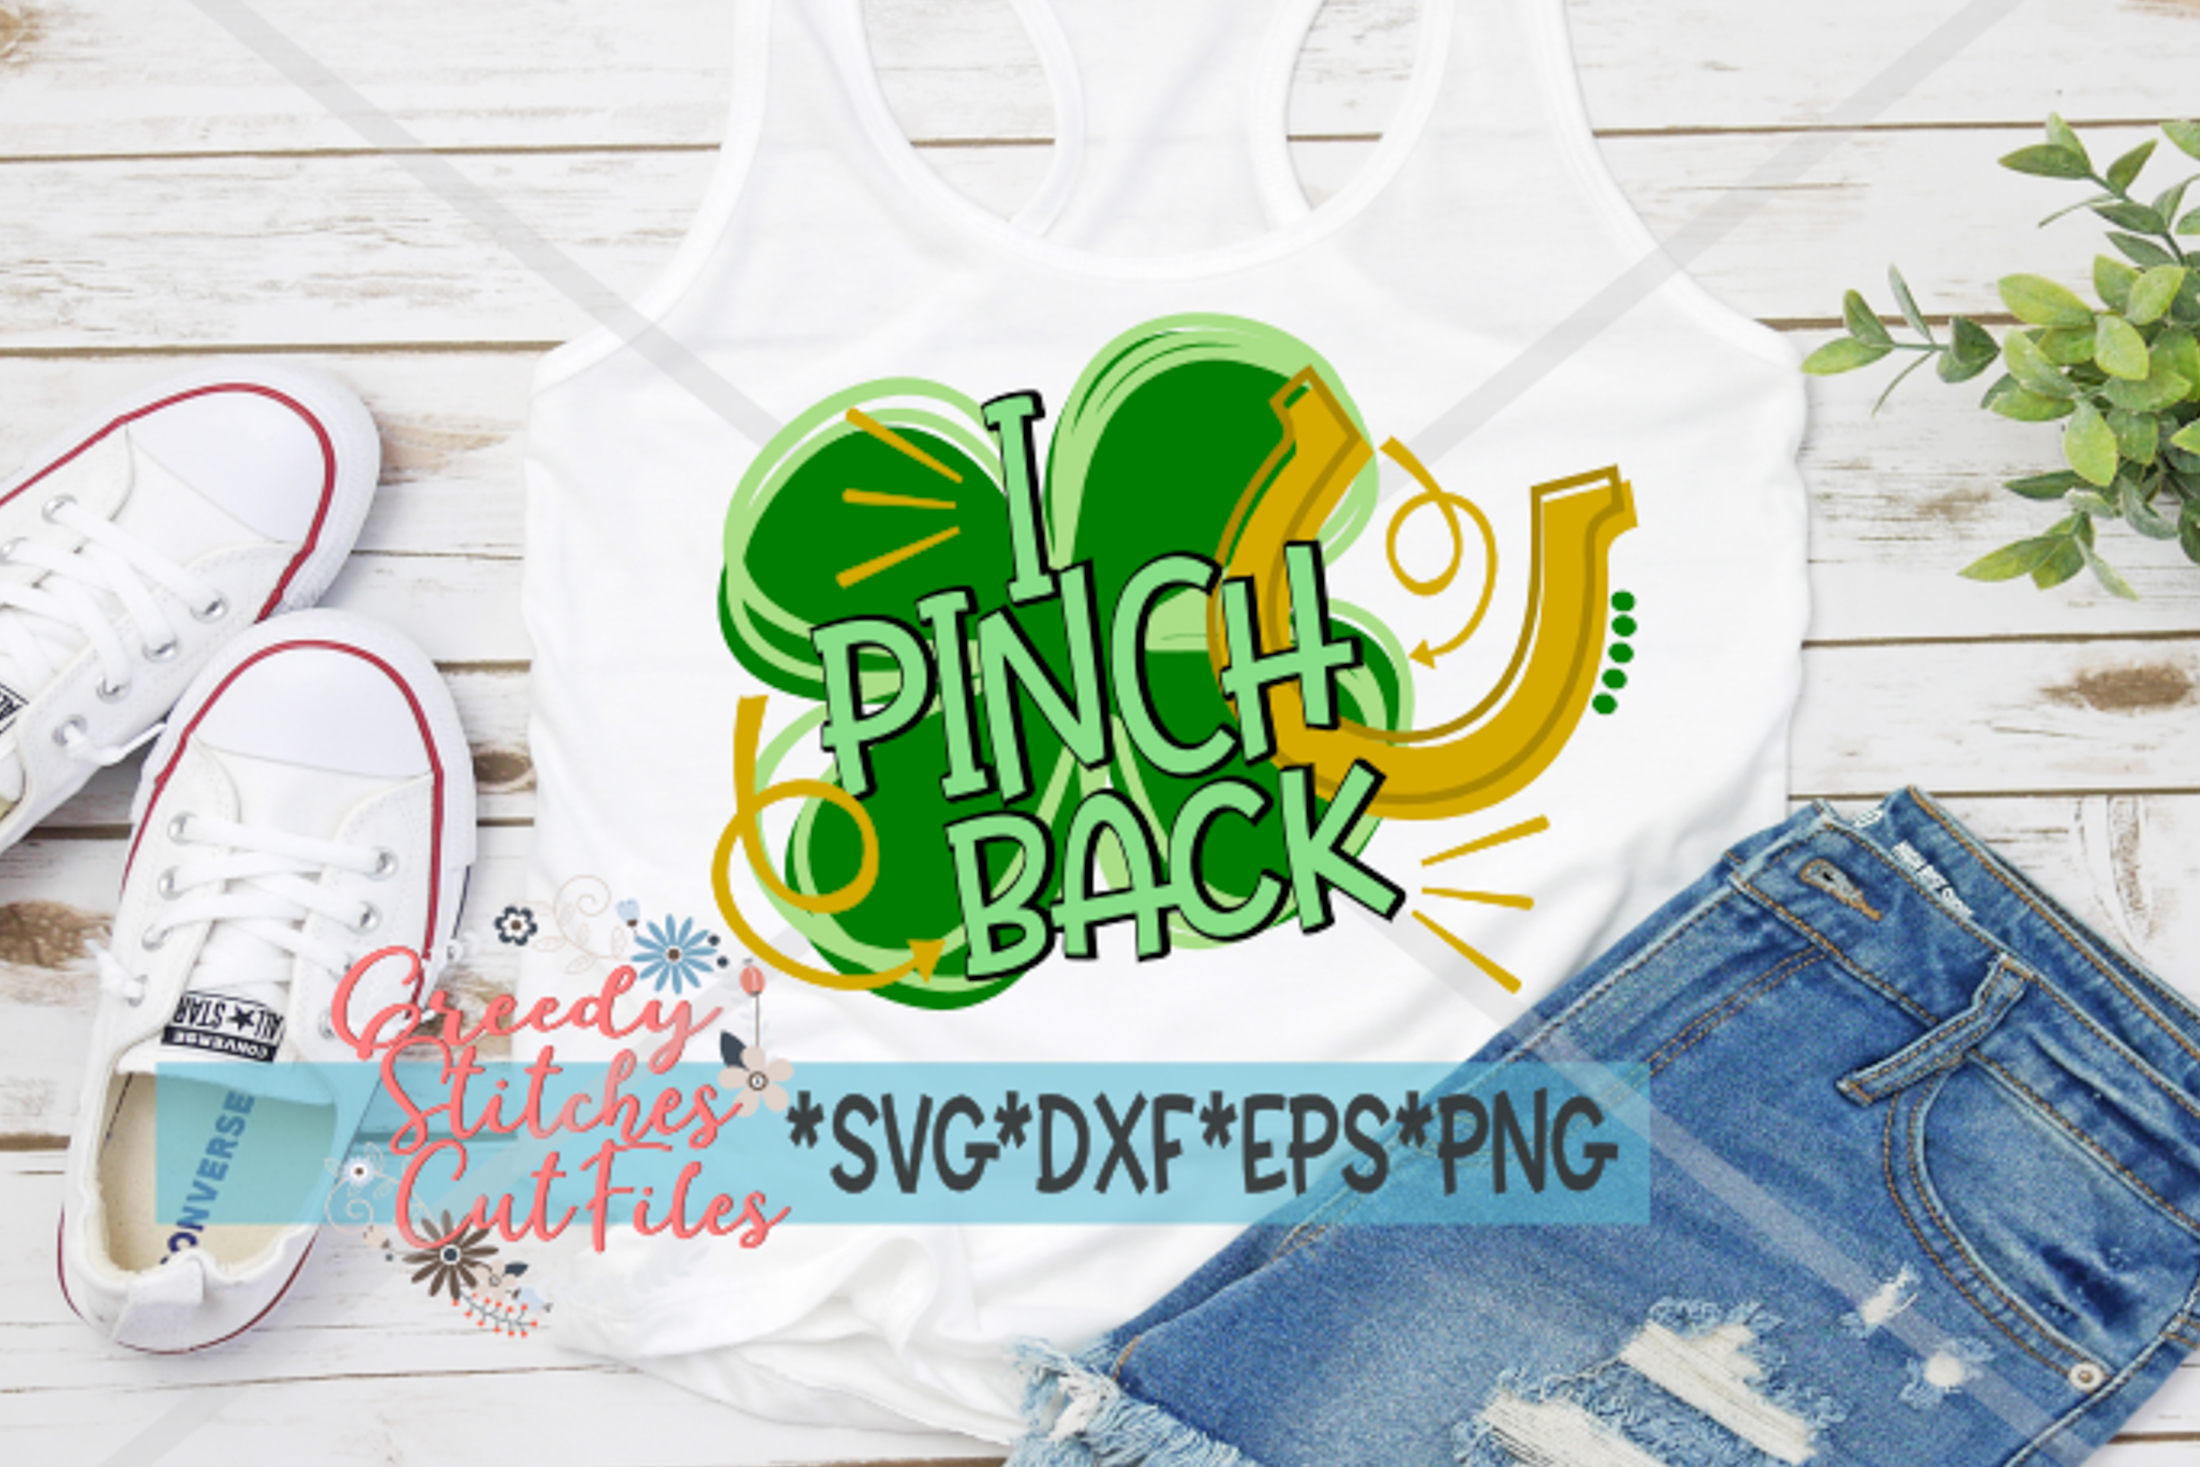 St. Patrick's Day | I Pinch Back SVG DXF EPS PNG example image 3